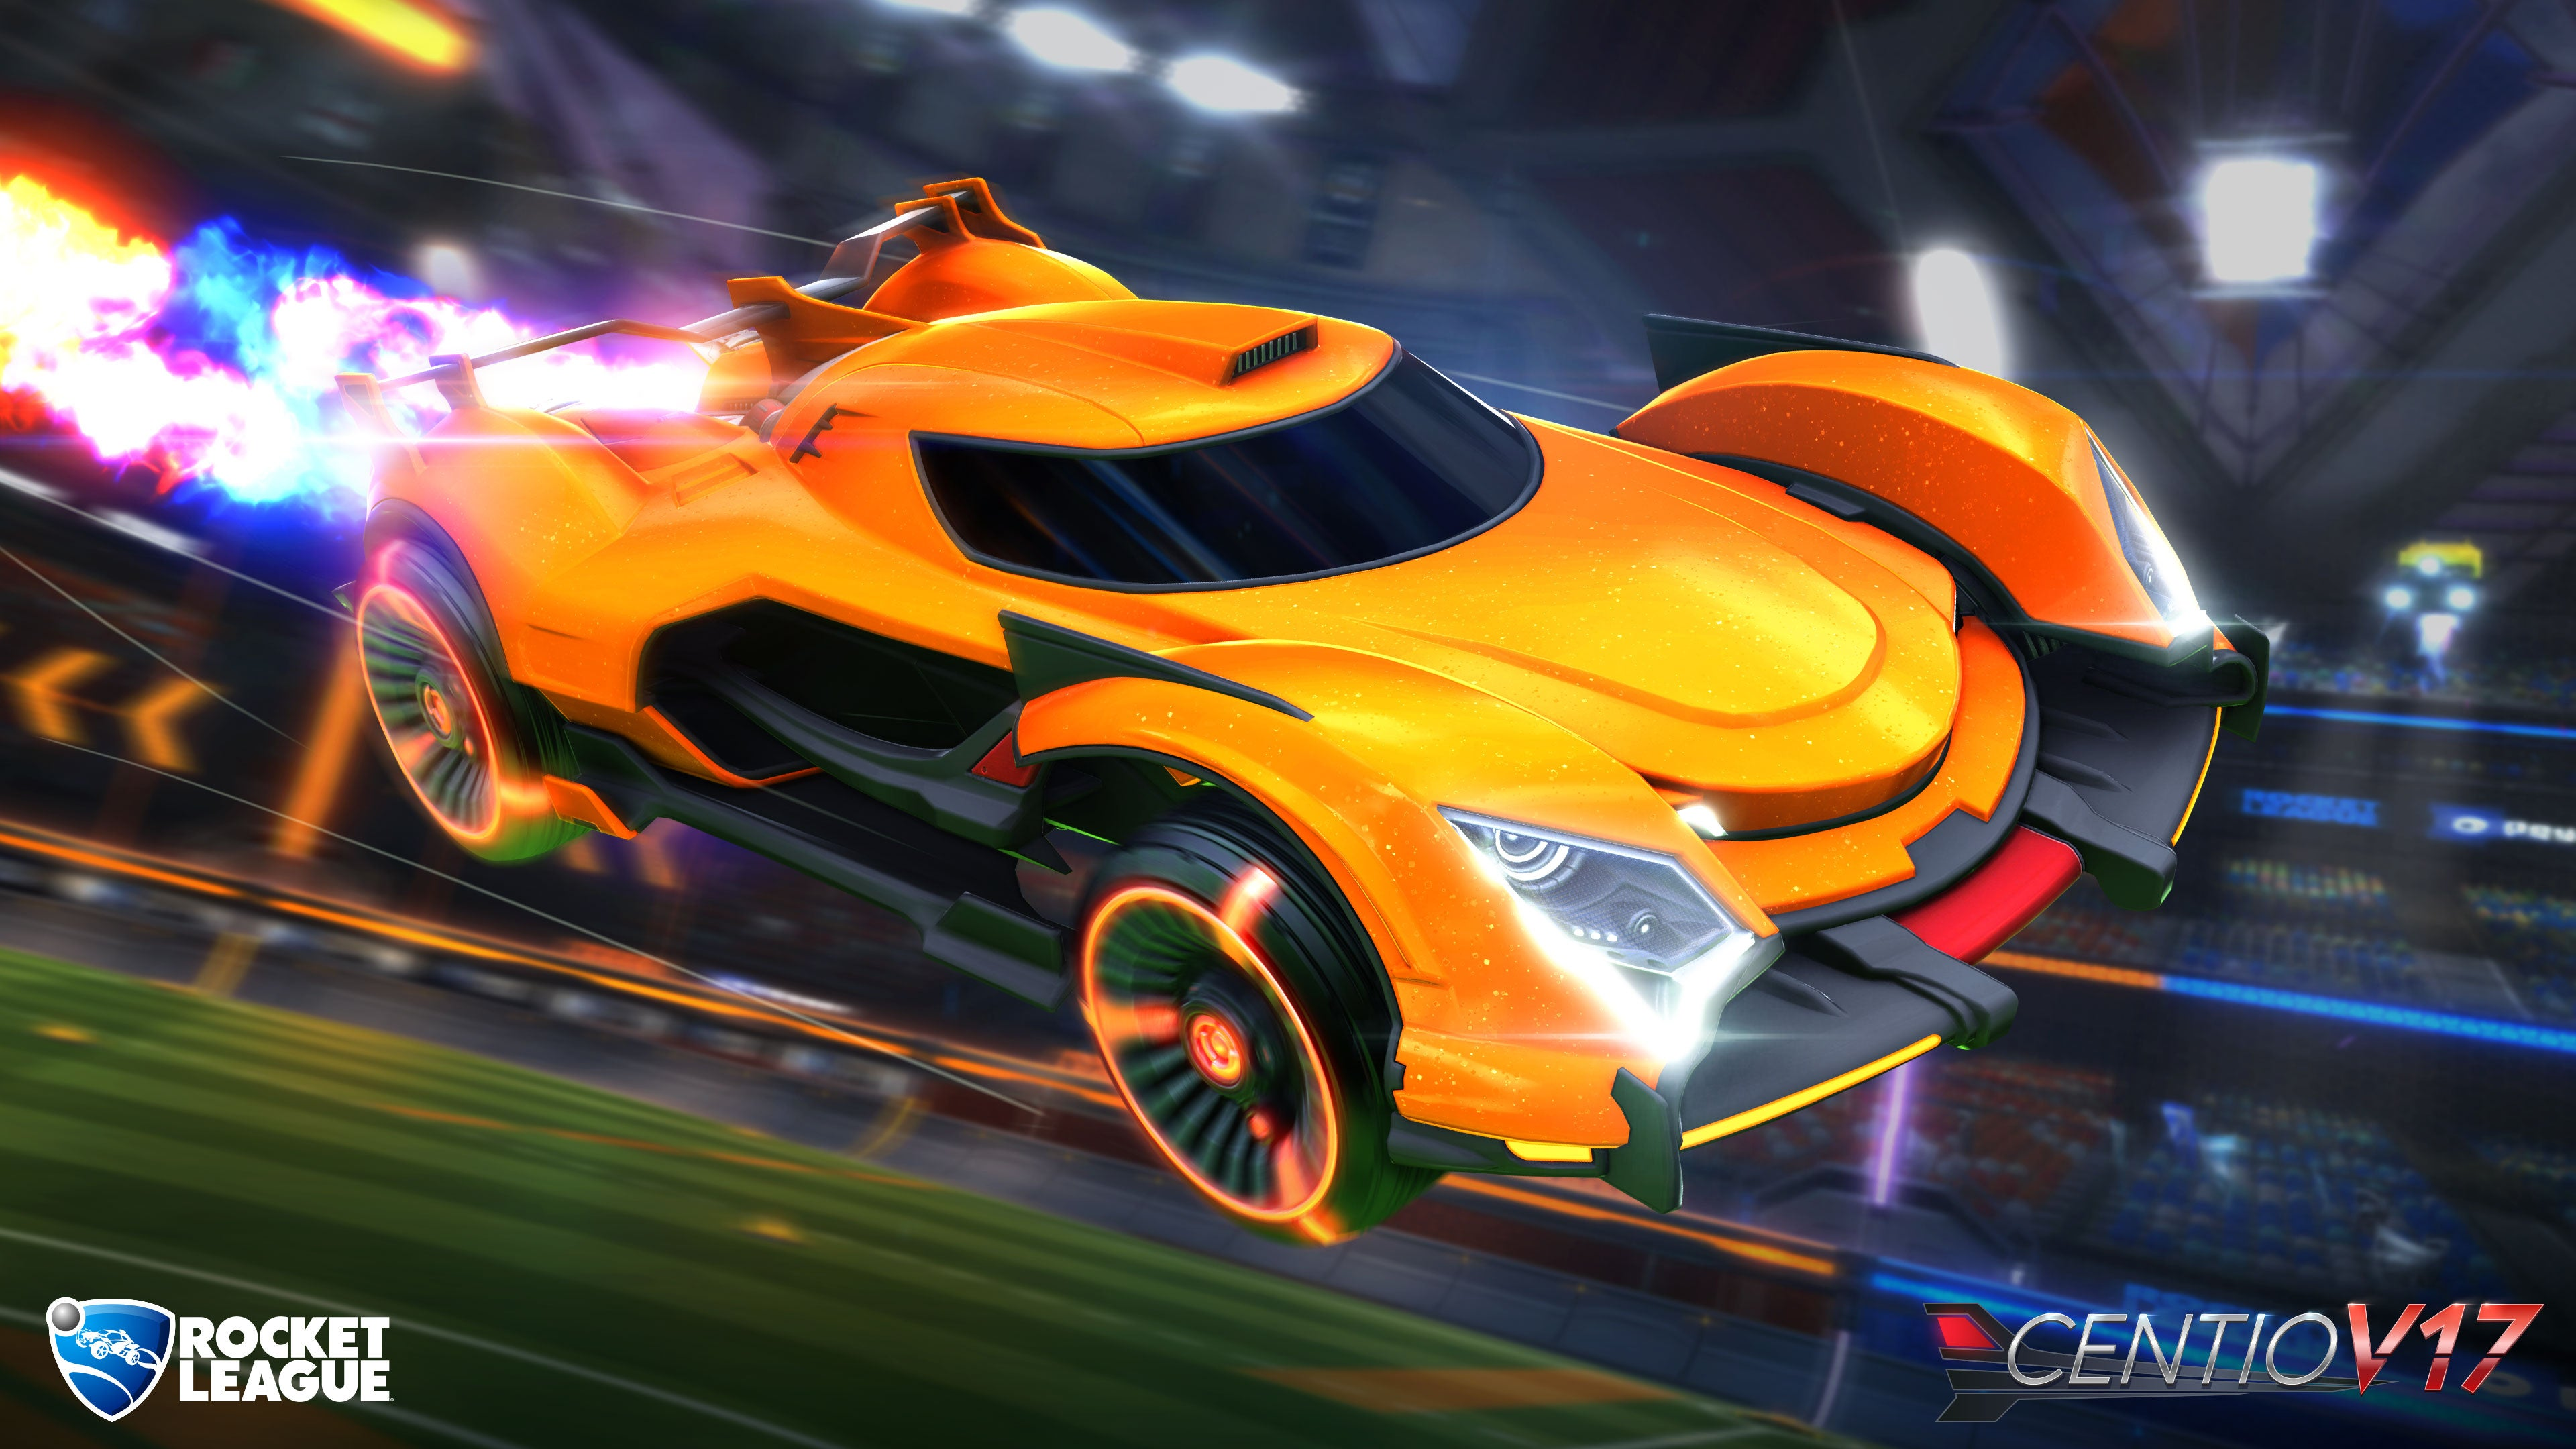 Rocket league s anniversary update launches july 5 for Updated wallpaper designs